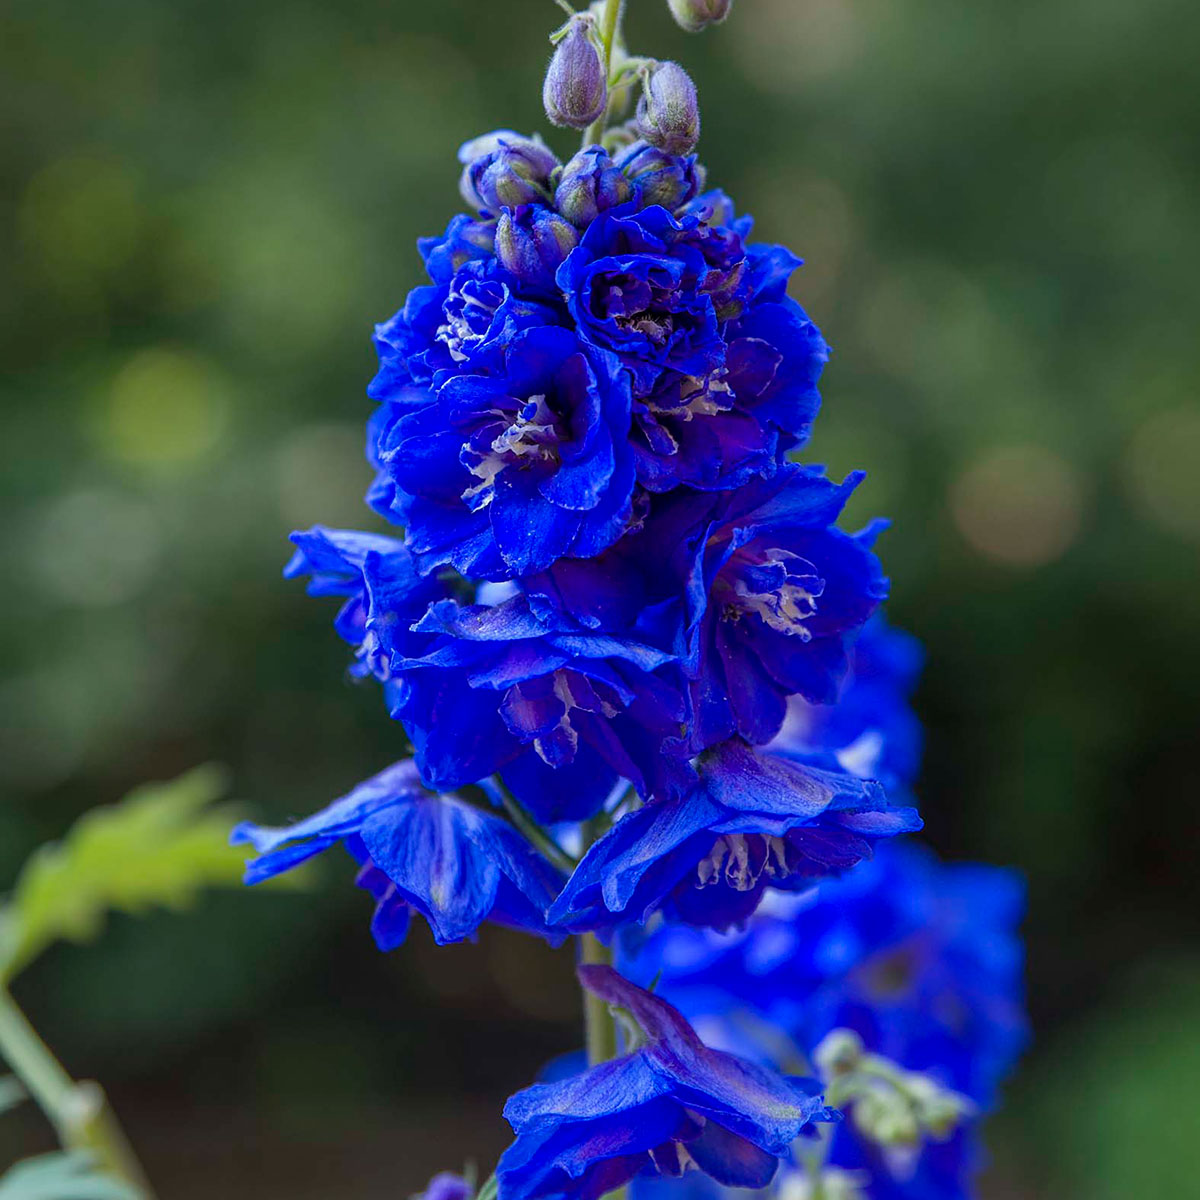 Patriotic (and rare) true blue blooms you'll want in your yard